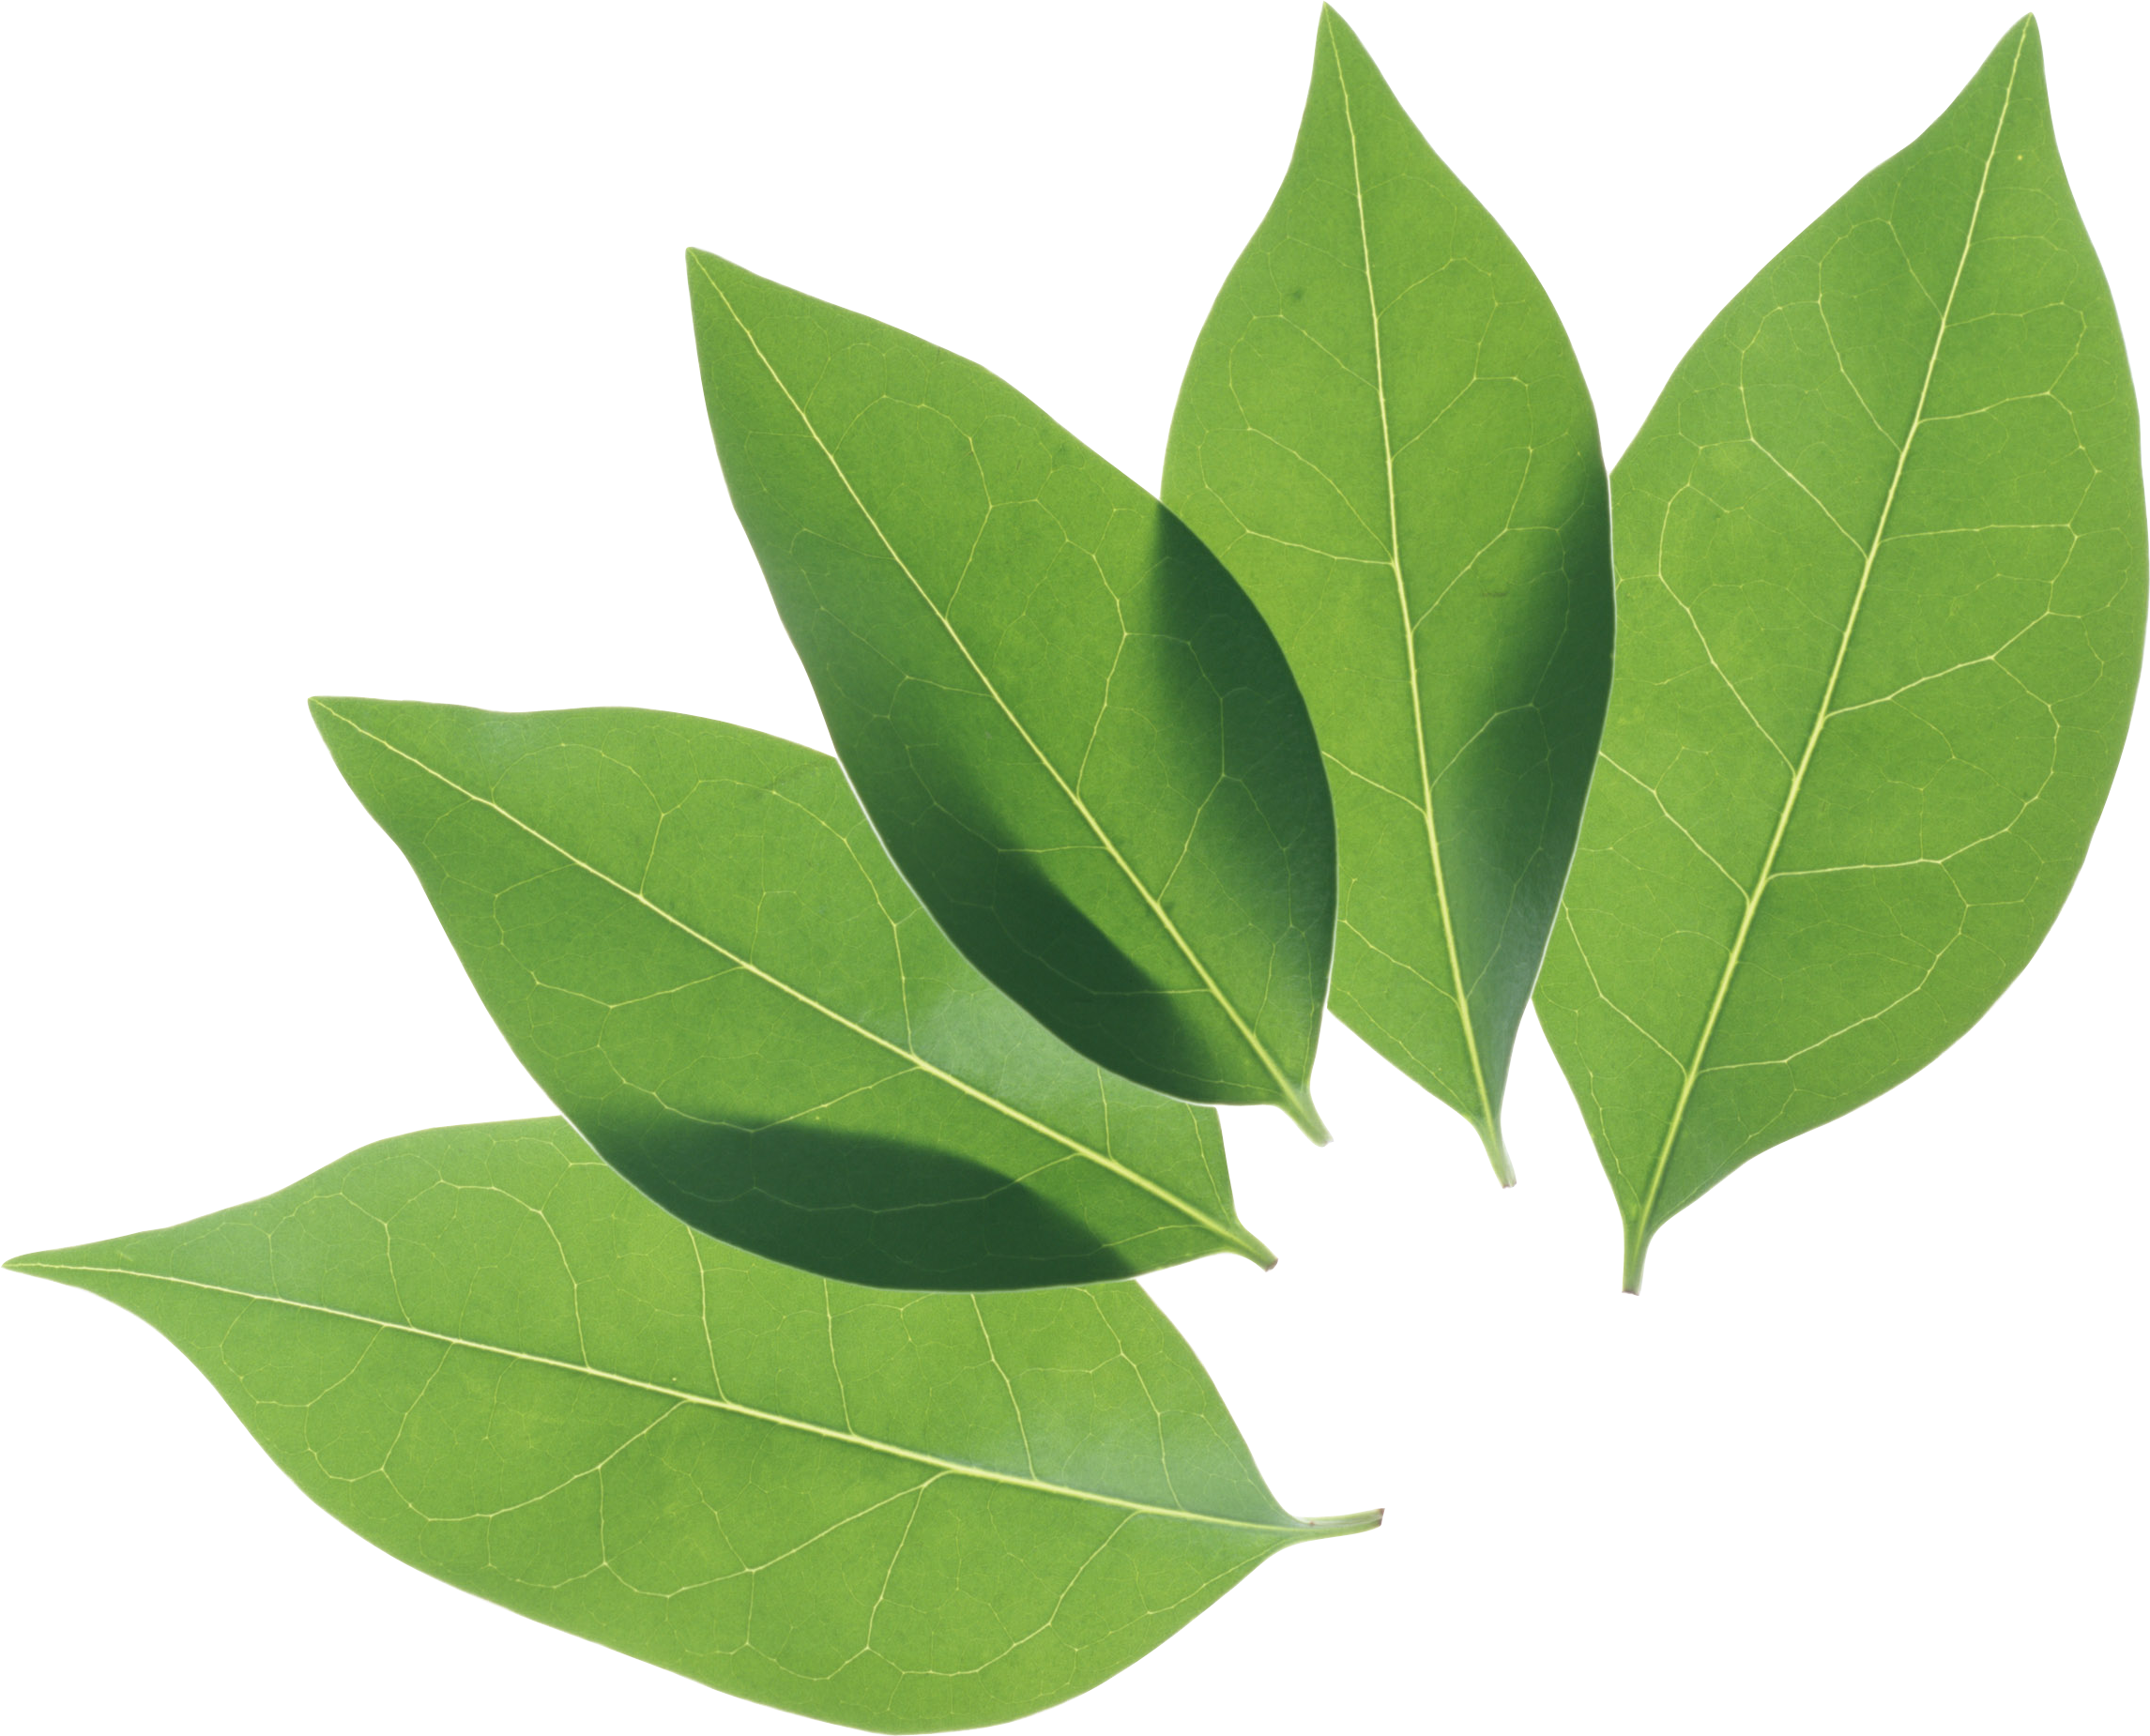 Green Leaves Png Image image #44849